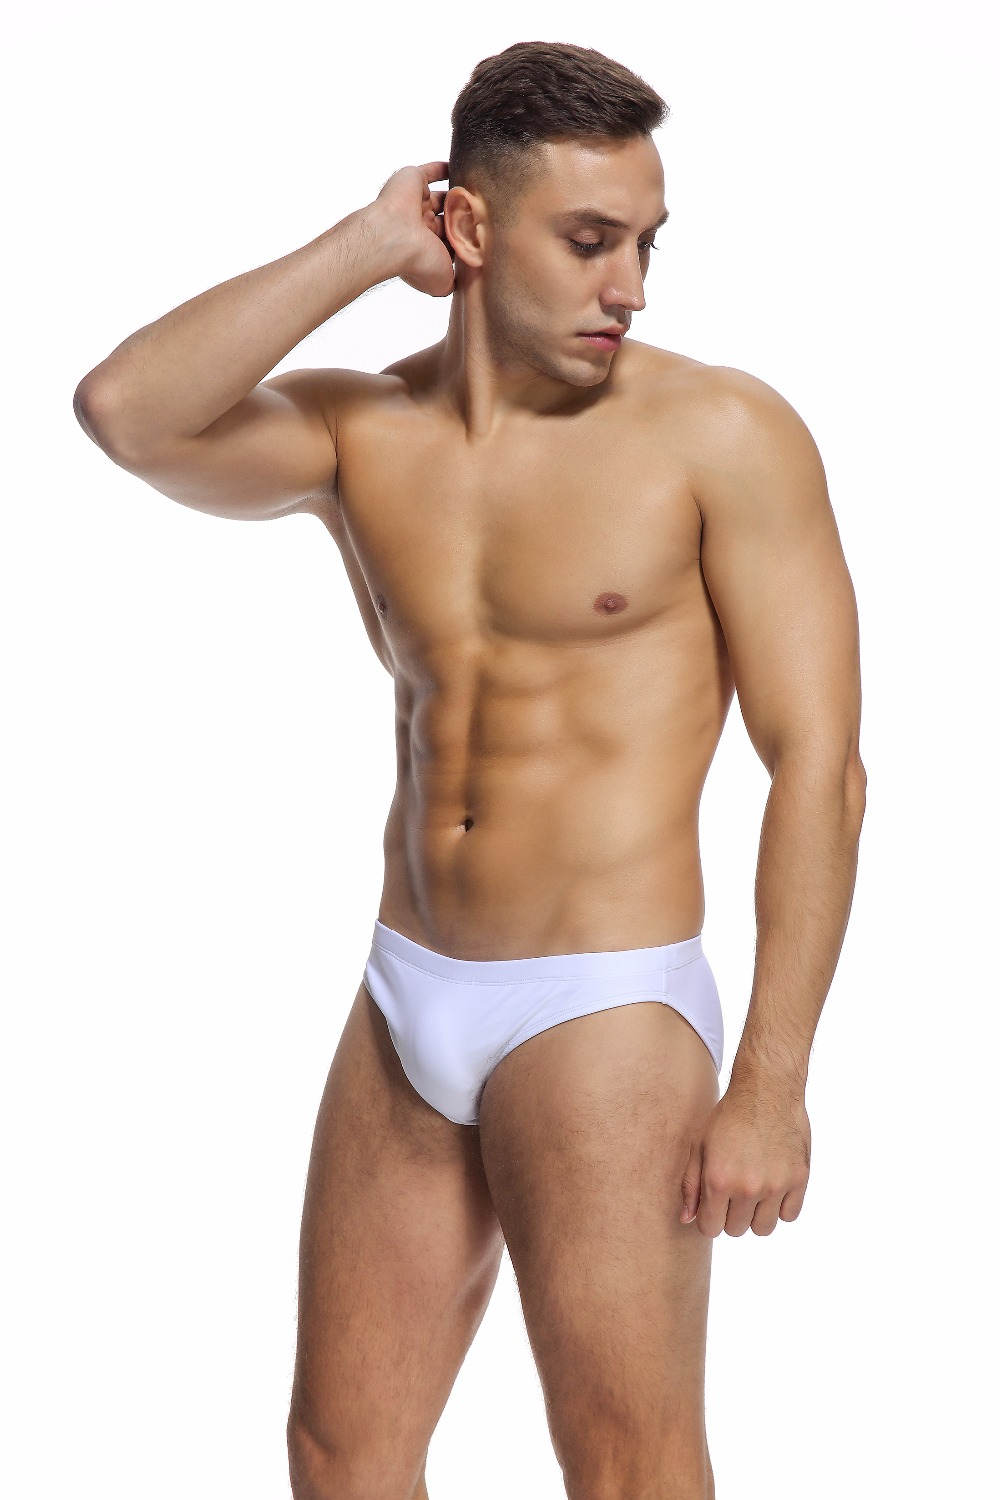 Free shipping Private customized BOYTHOR Men 39 s suit low waist male swimming trunks sexy tight swimwear bikini in Body Suits from Sports amp Entertainment